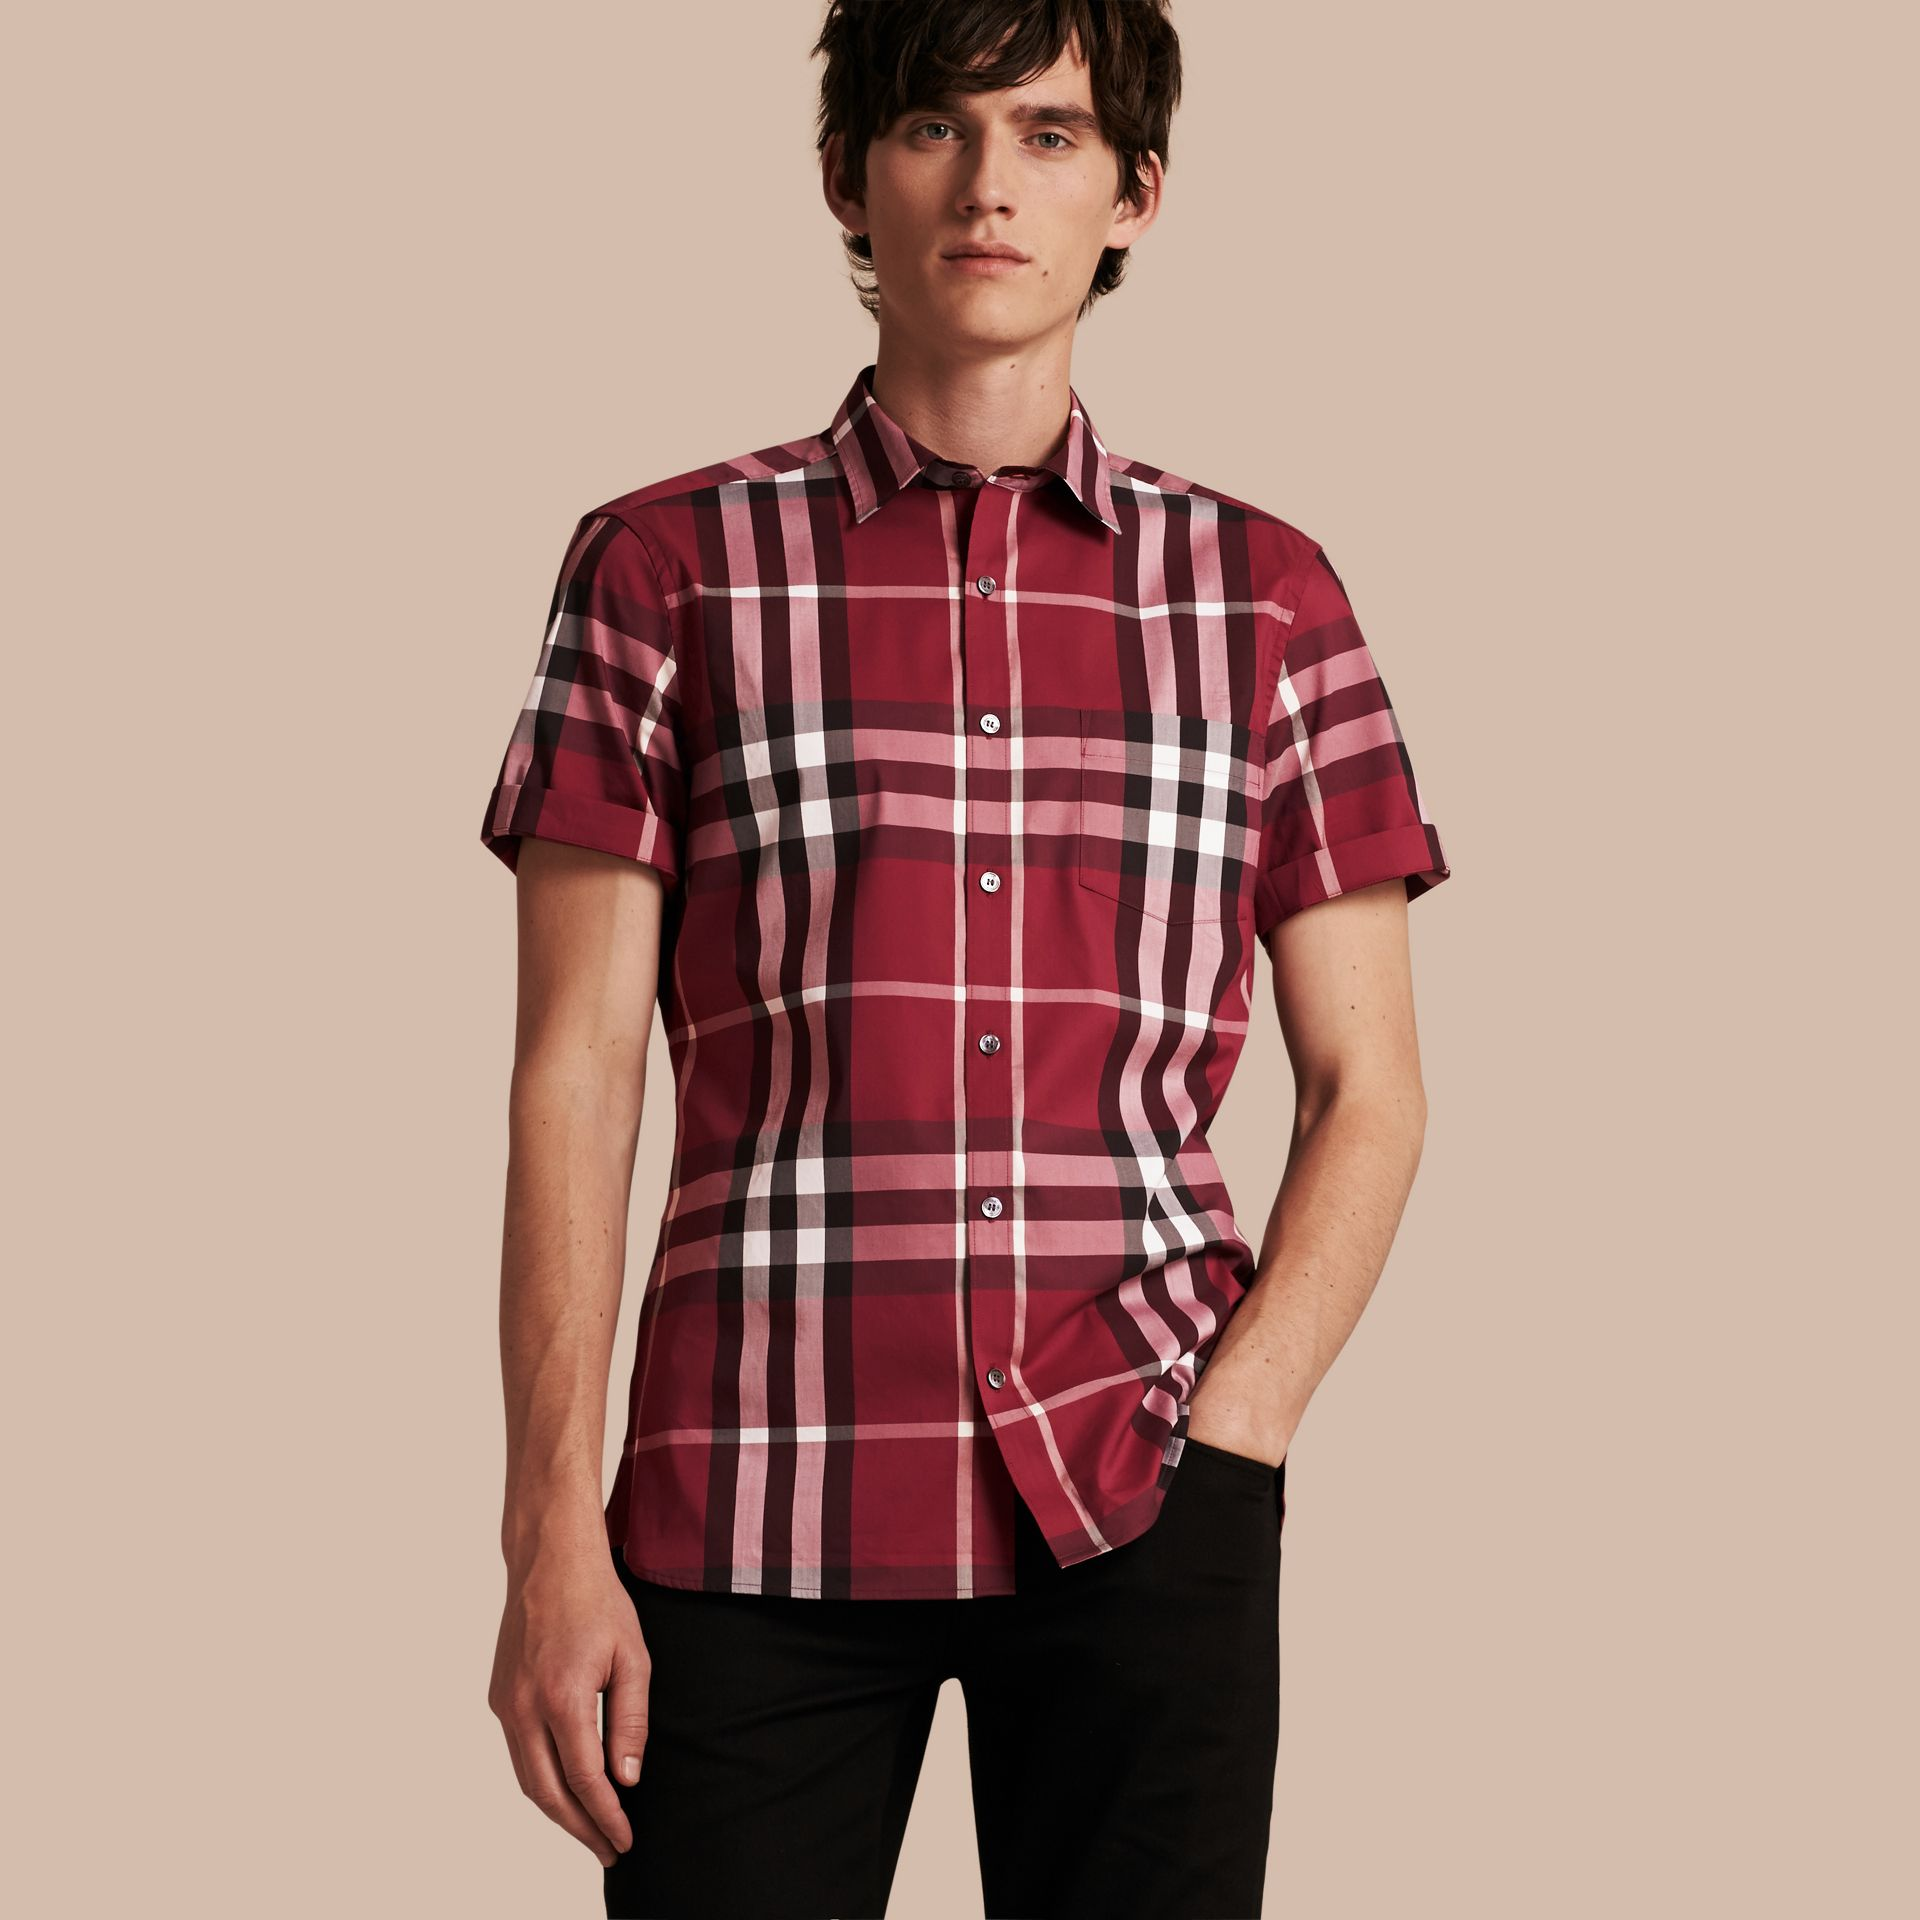 Short-sleeved Check Stretch Cotton Shirt in Plum Pink - Men | Burberry Australia - gallery image 1